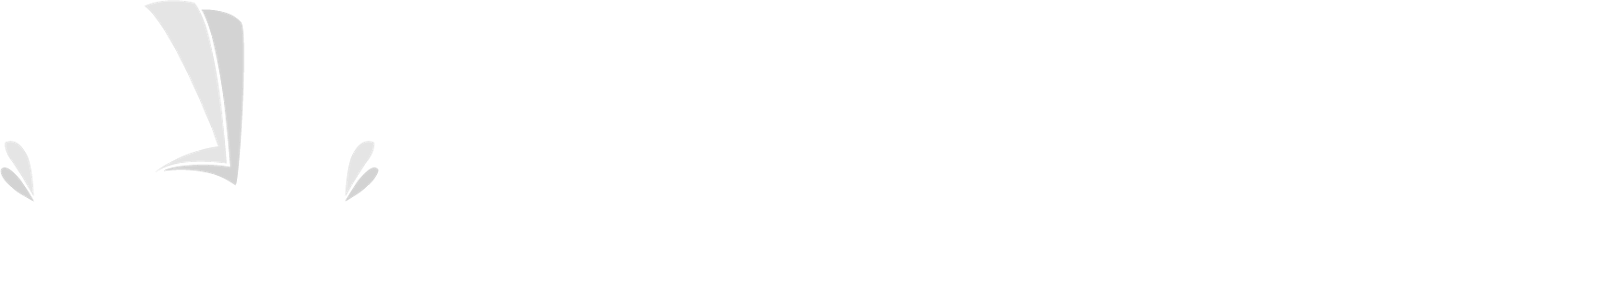 Finance Care Online